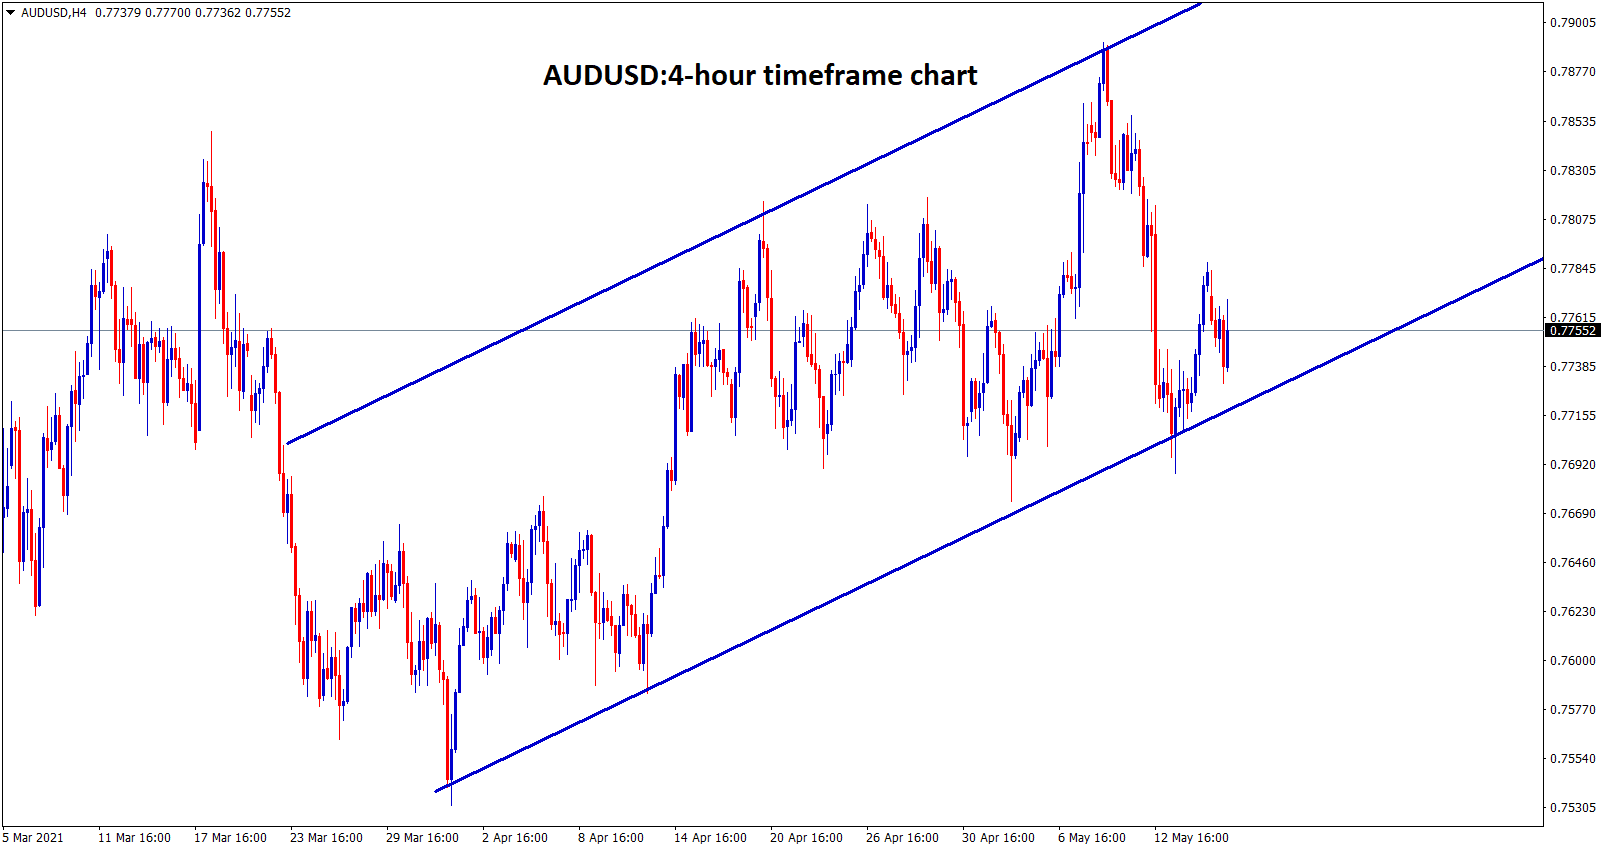 AUDUSD is moving in an uptrend range